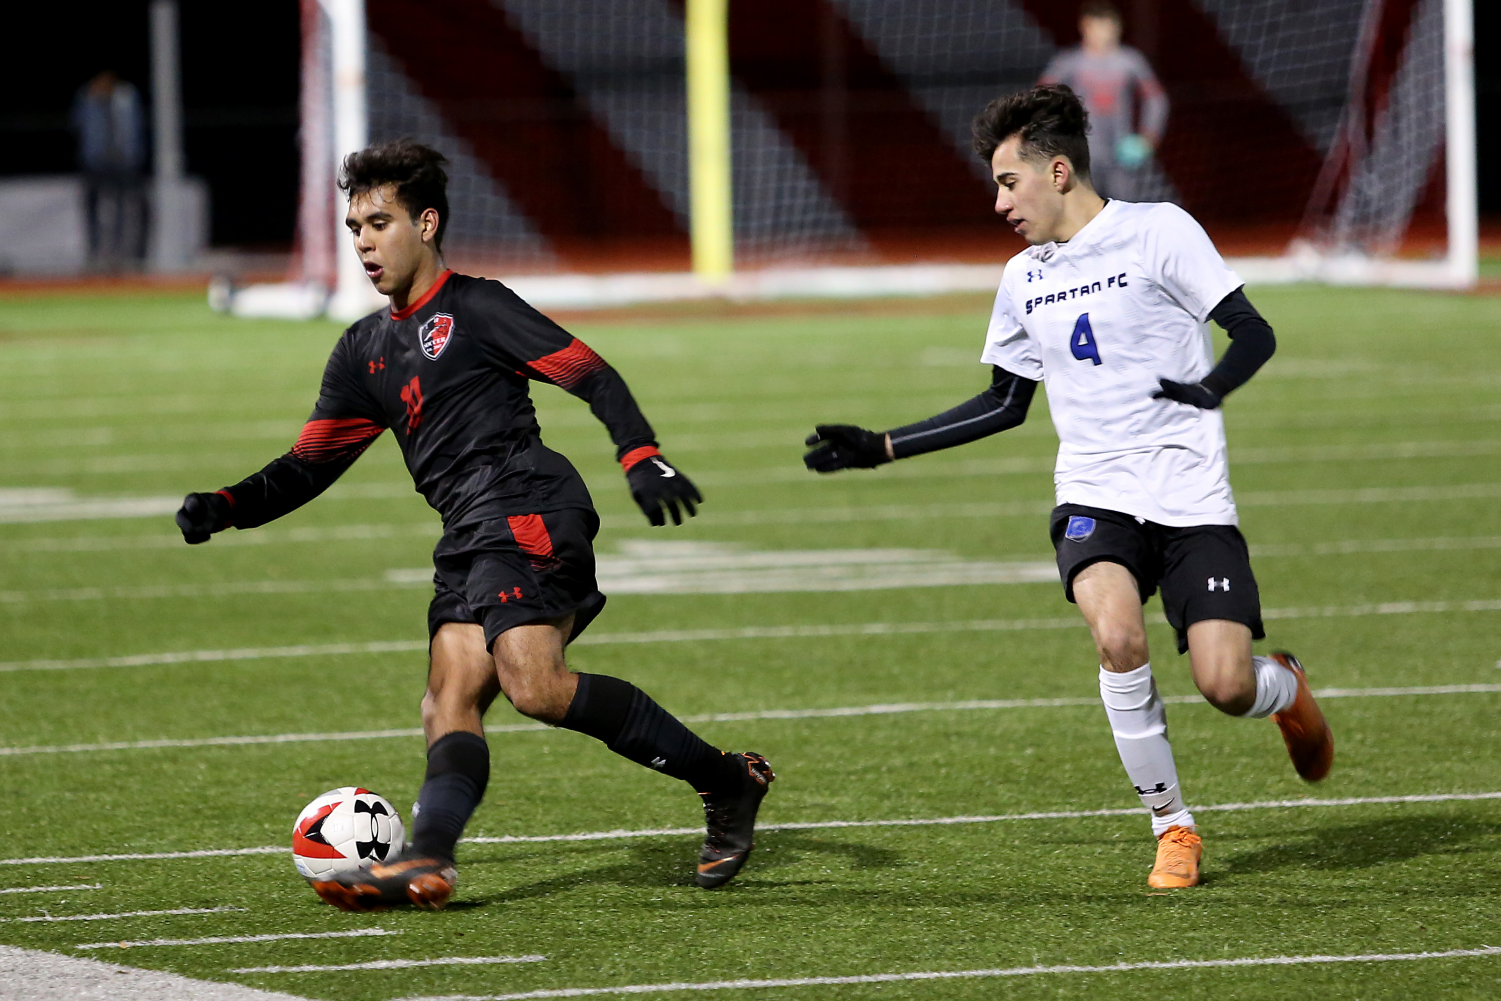 [file photo] Bruno Gallegos, 12, dribbles the ball in a game versus Burleson Centennial during the  2019 season.